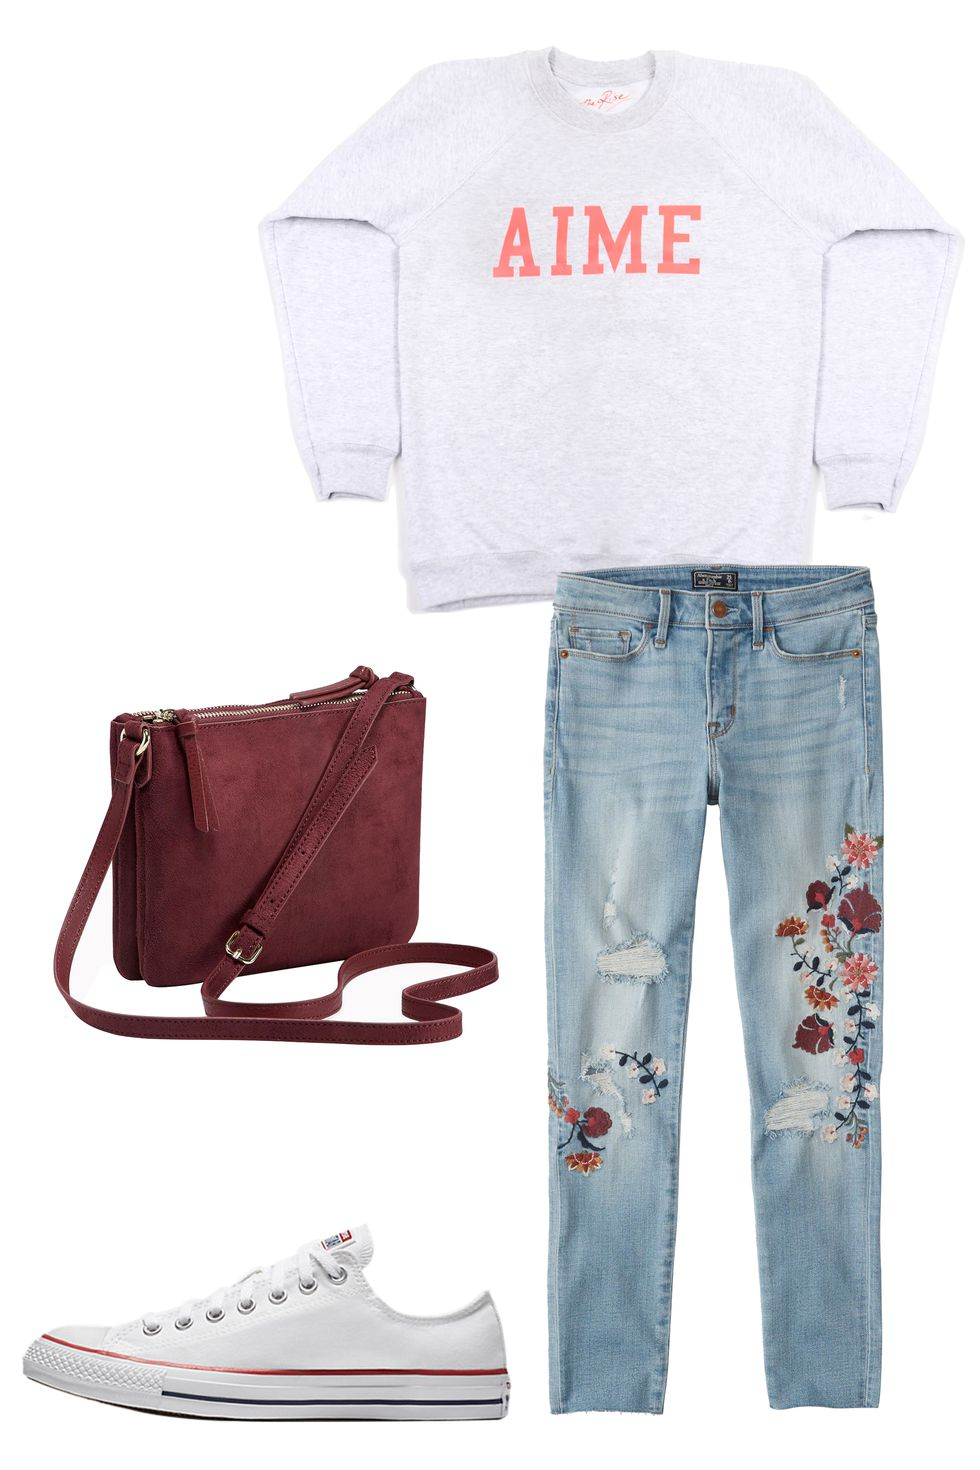 blue-light-skinny-jeans-burgundy-bag-grayl-sweater-sweatshirt-white-shoe-sneakers-converse-howtowear-valentinesday-outfit-fall-winter-weekend.jpg